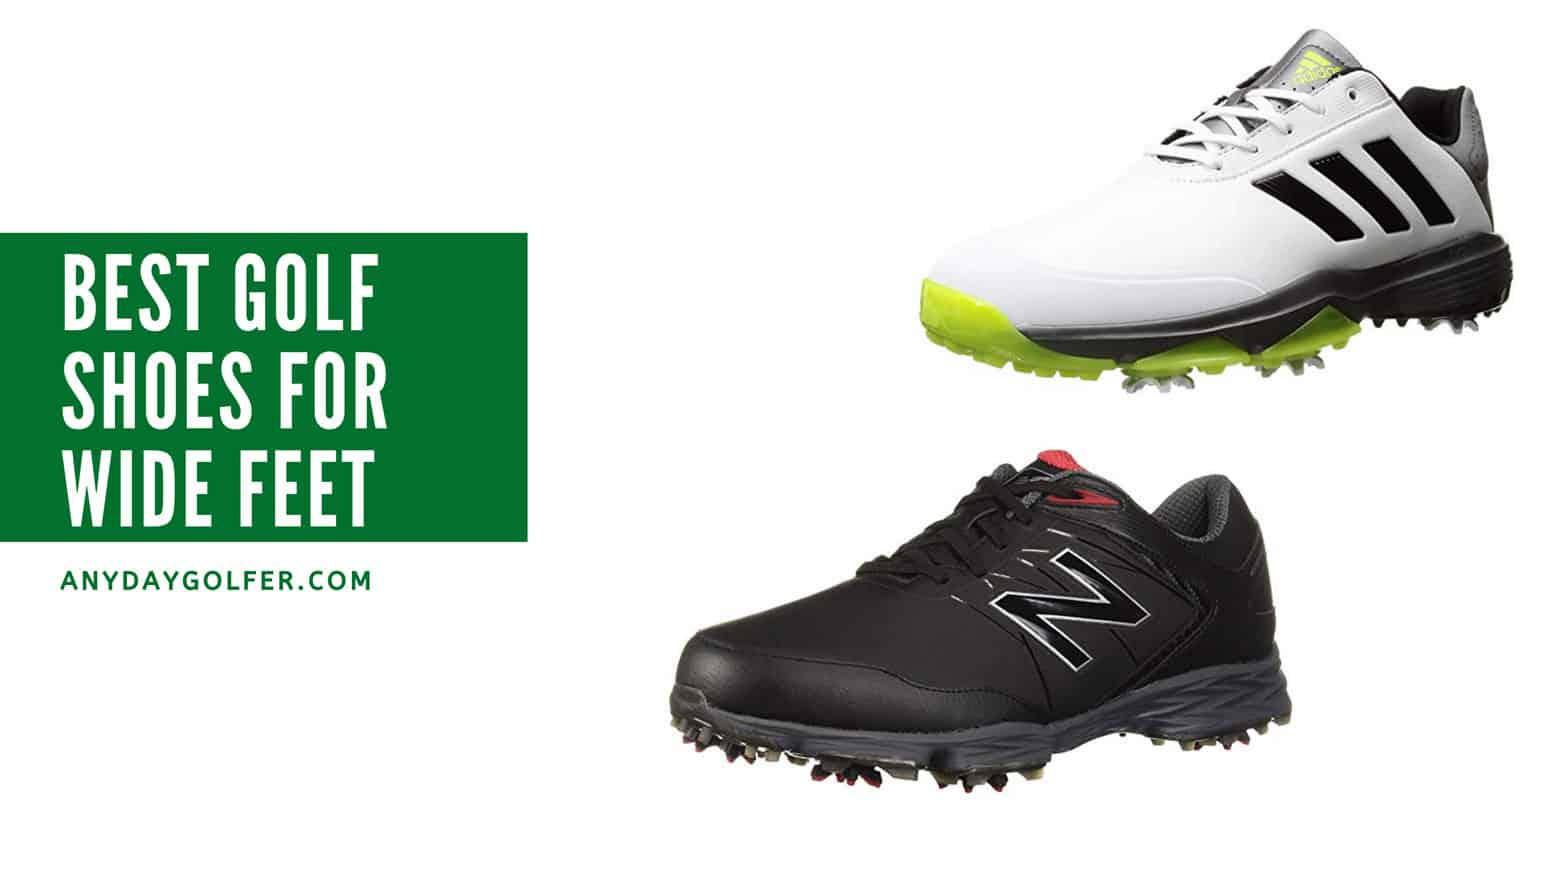 Best Golf Shoes For Wide Feet in 2020